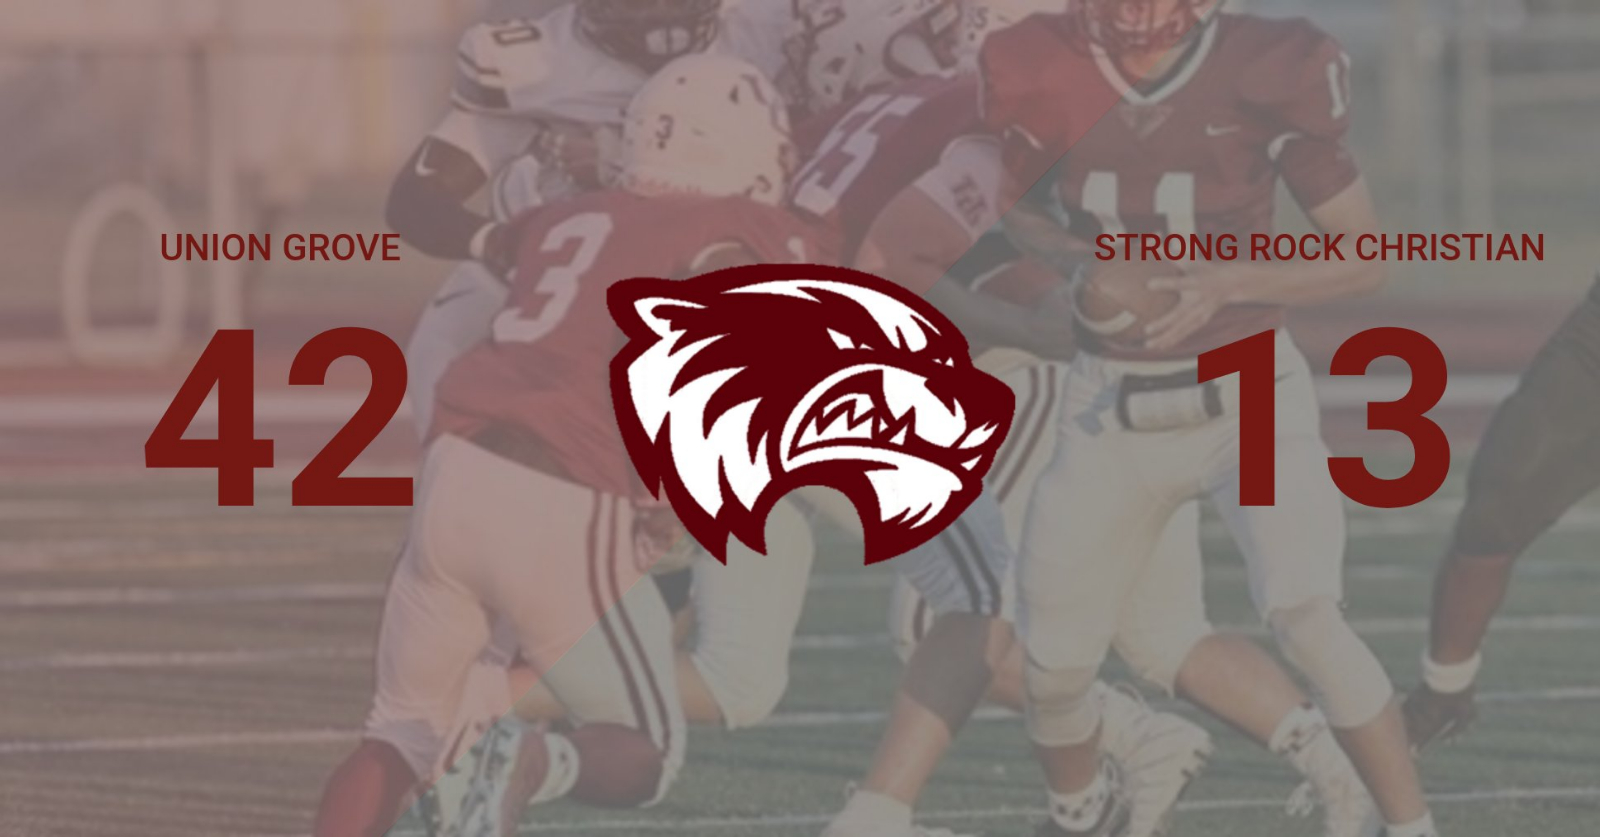 Union Grove takes a big win over Strong Rock Christian on Friday 9/6